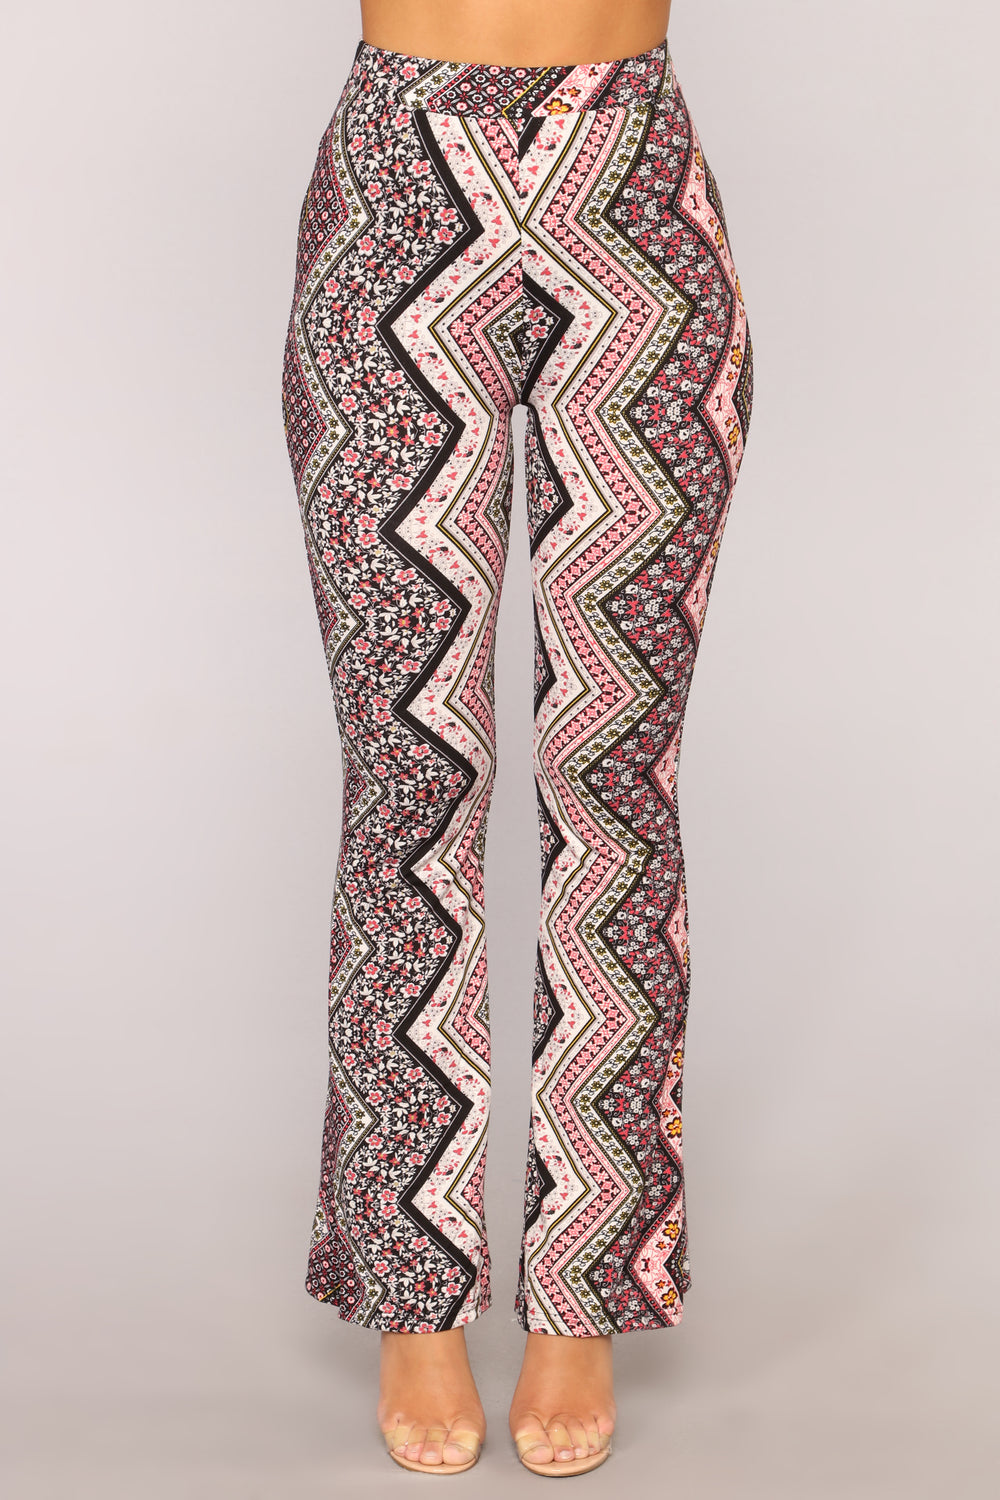 Carly Print Flare Pants - Pink